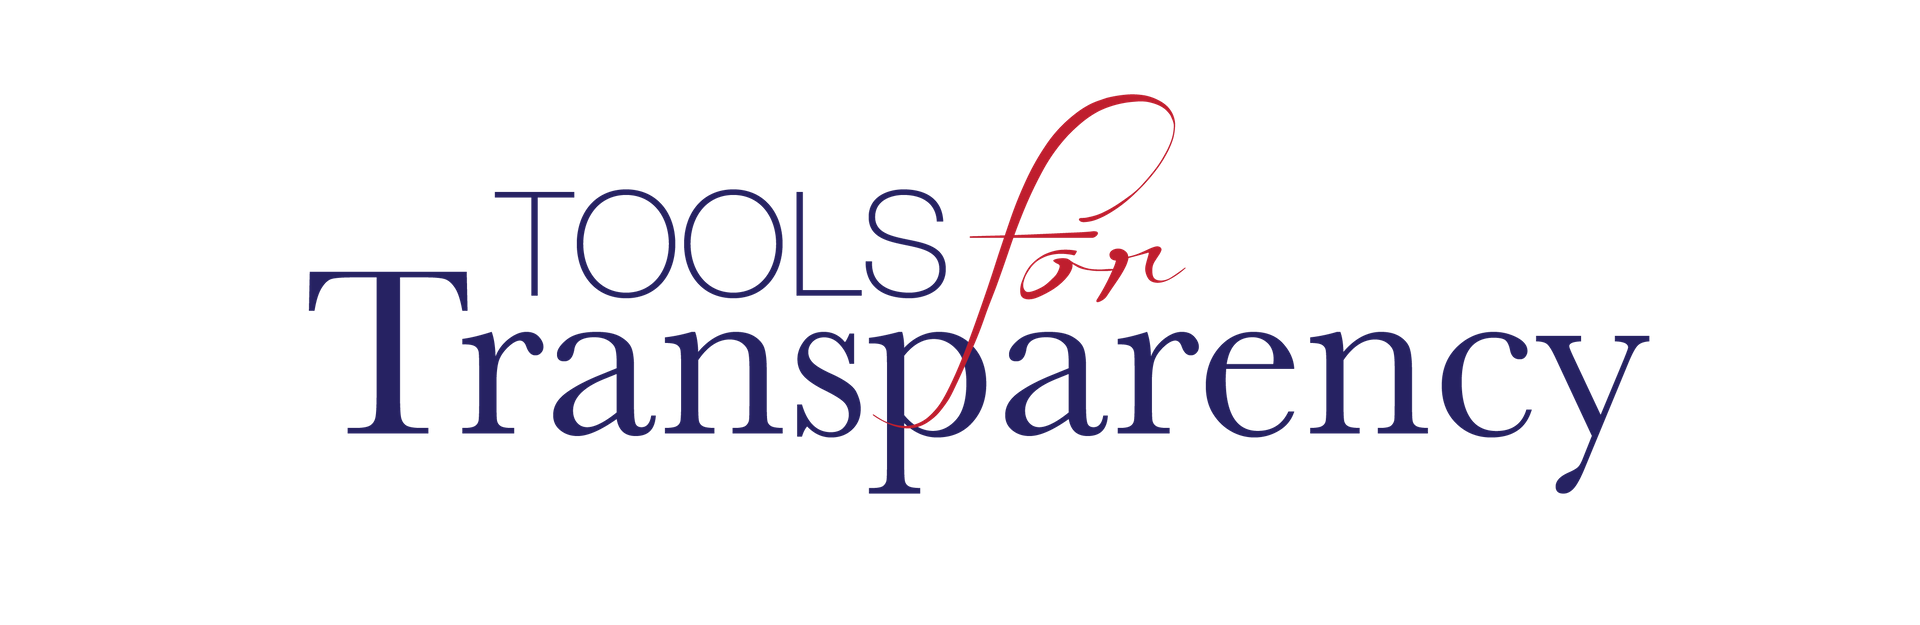 Patreon transparent donate button. Tools for transparency llc